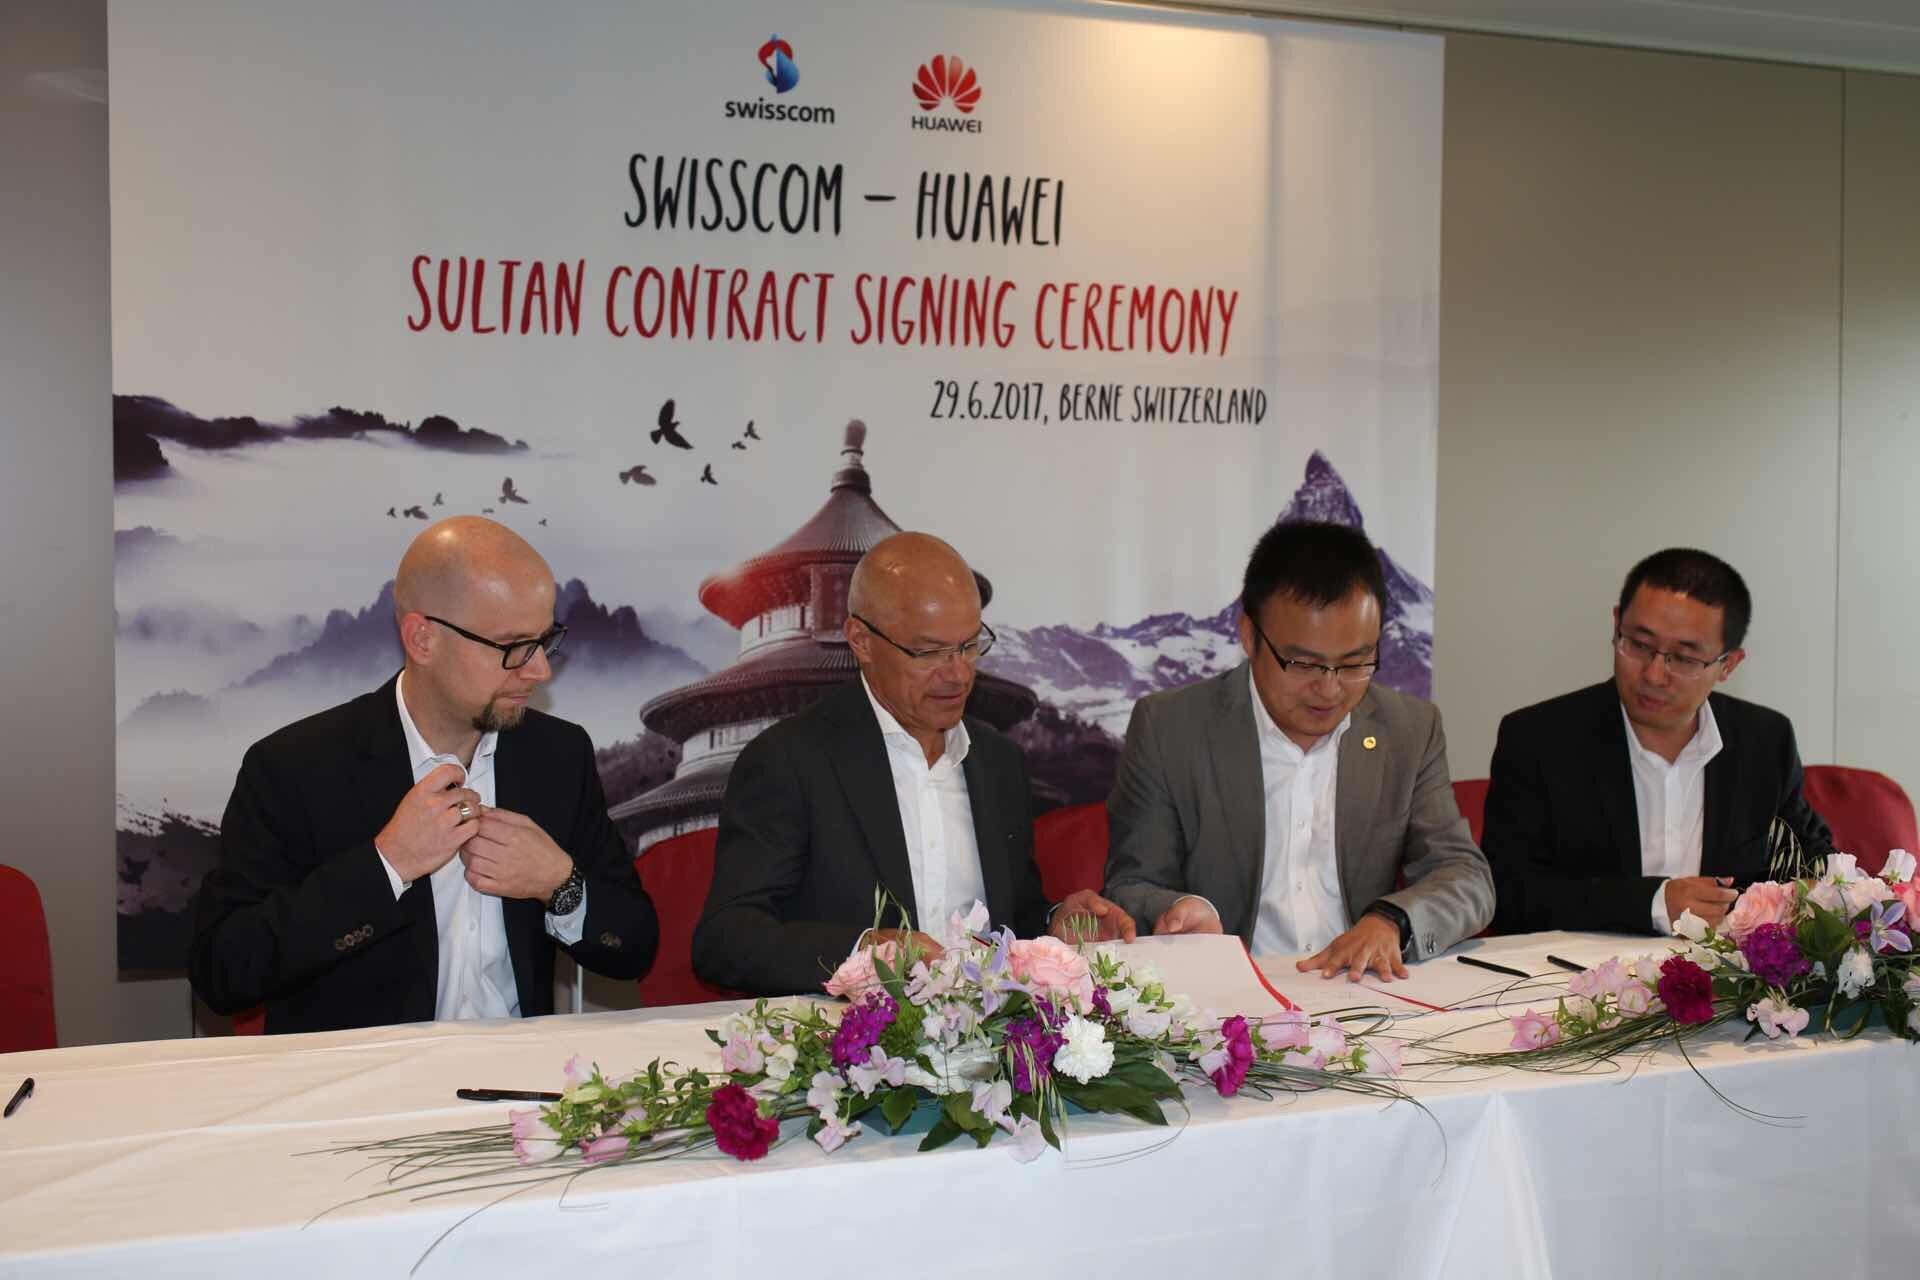 Swisscom confirms cooperation with Huawei